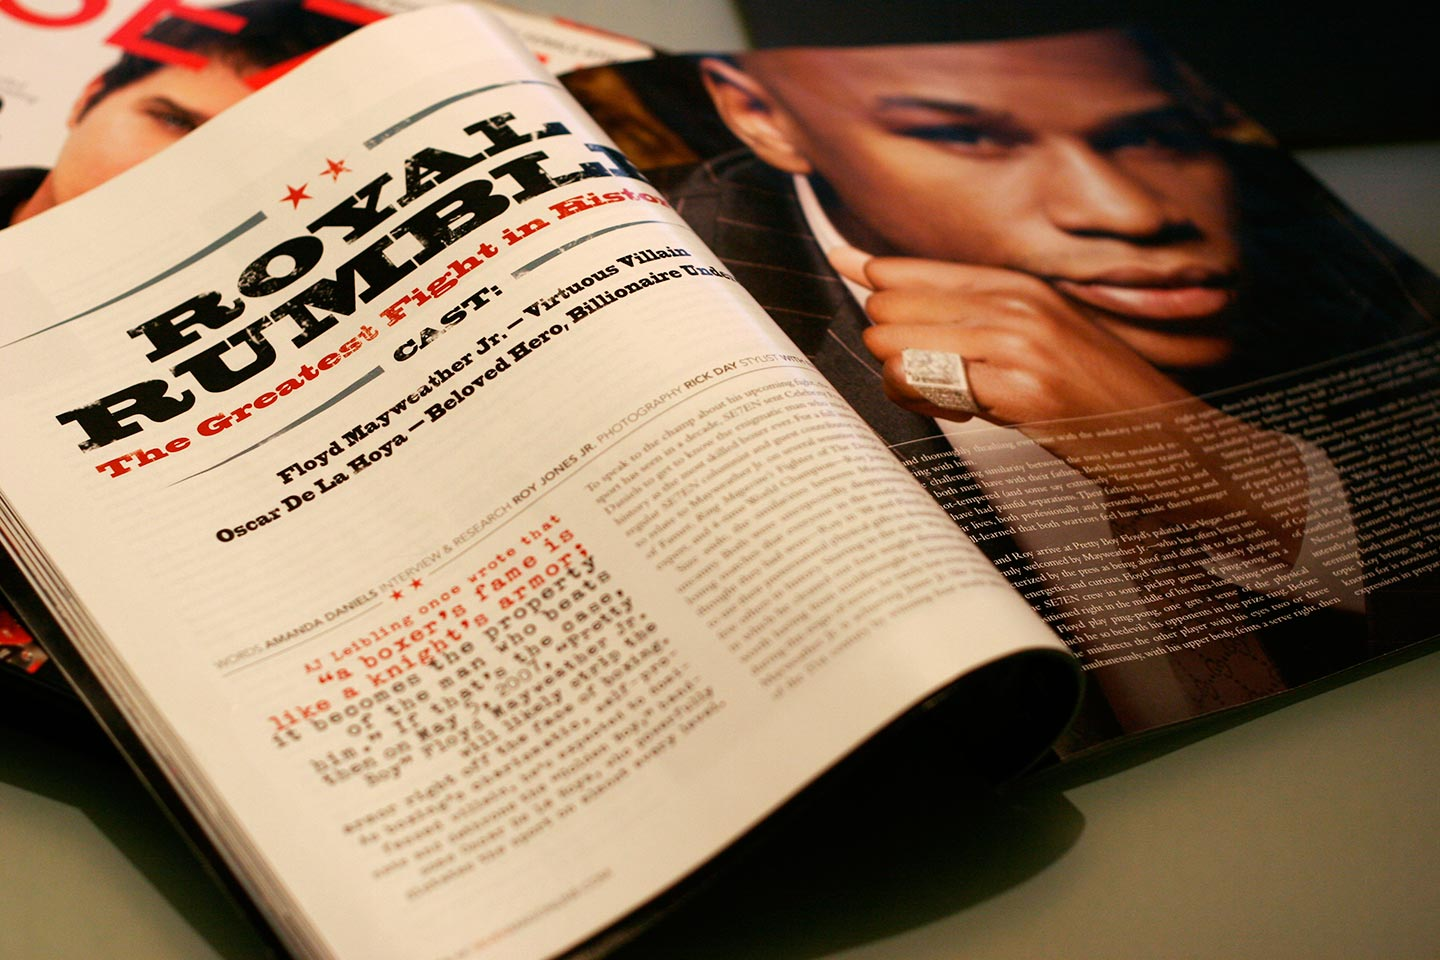 Magazine spread in black, red, and white